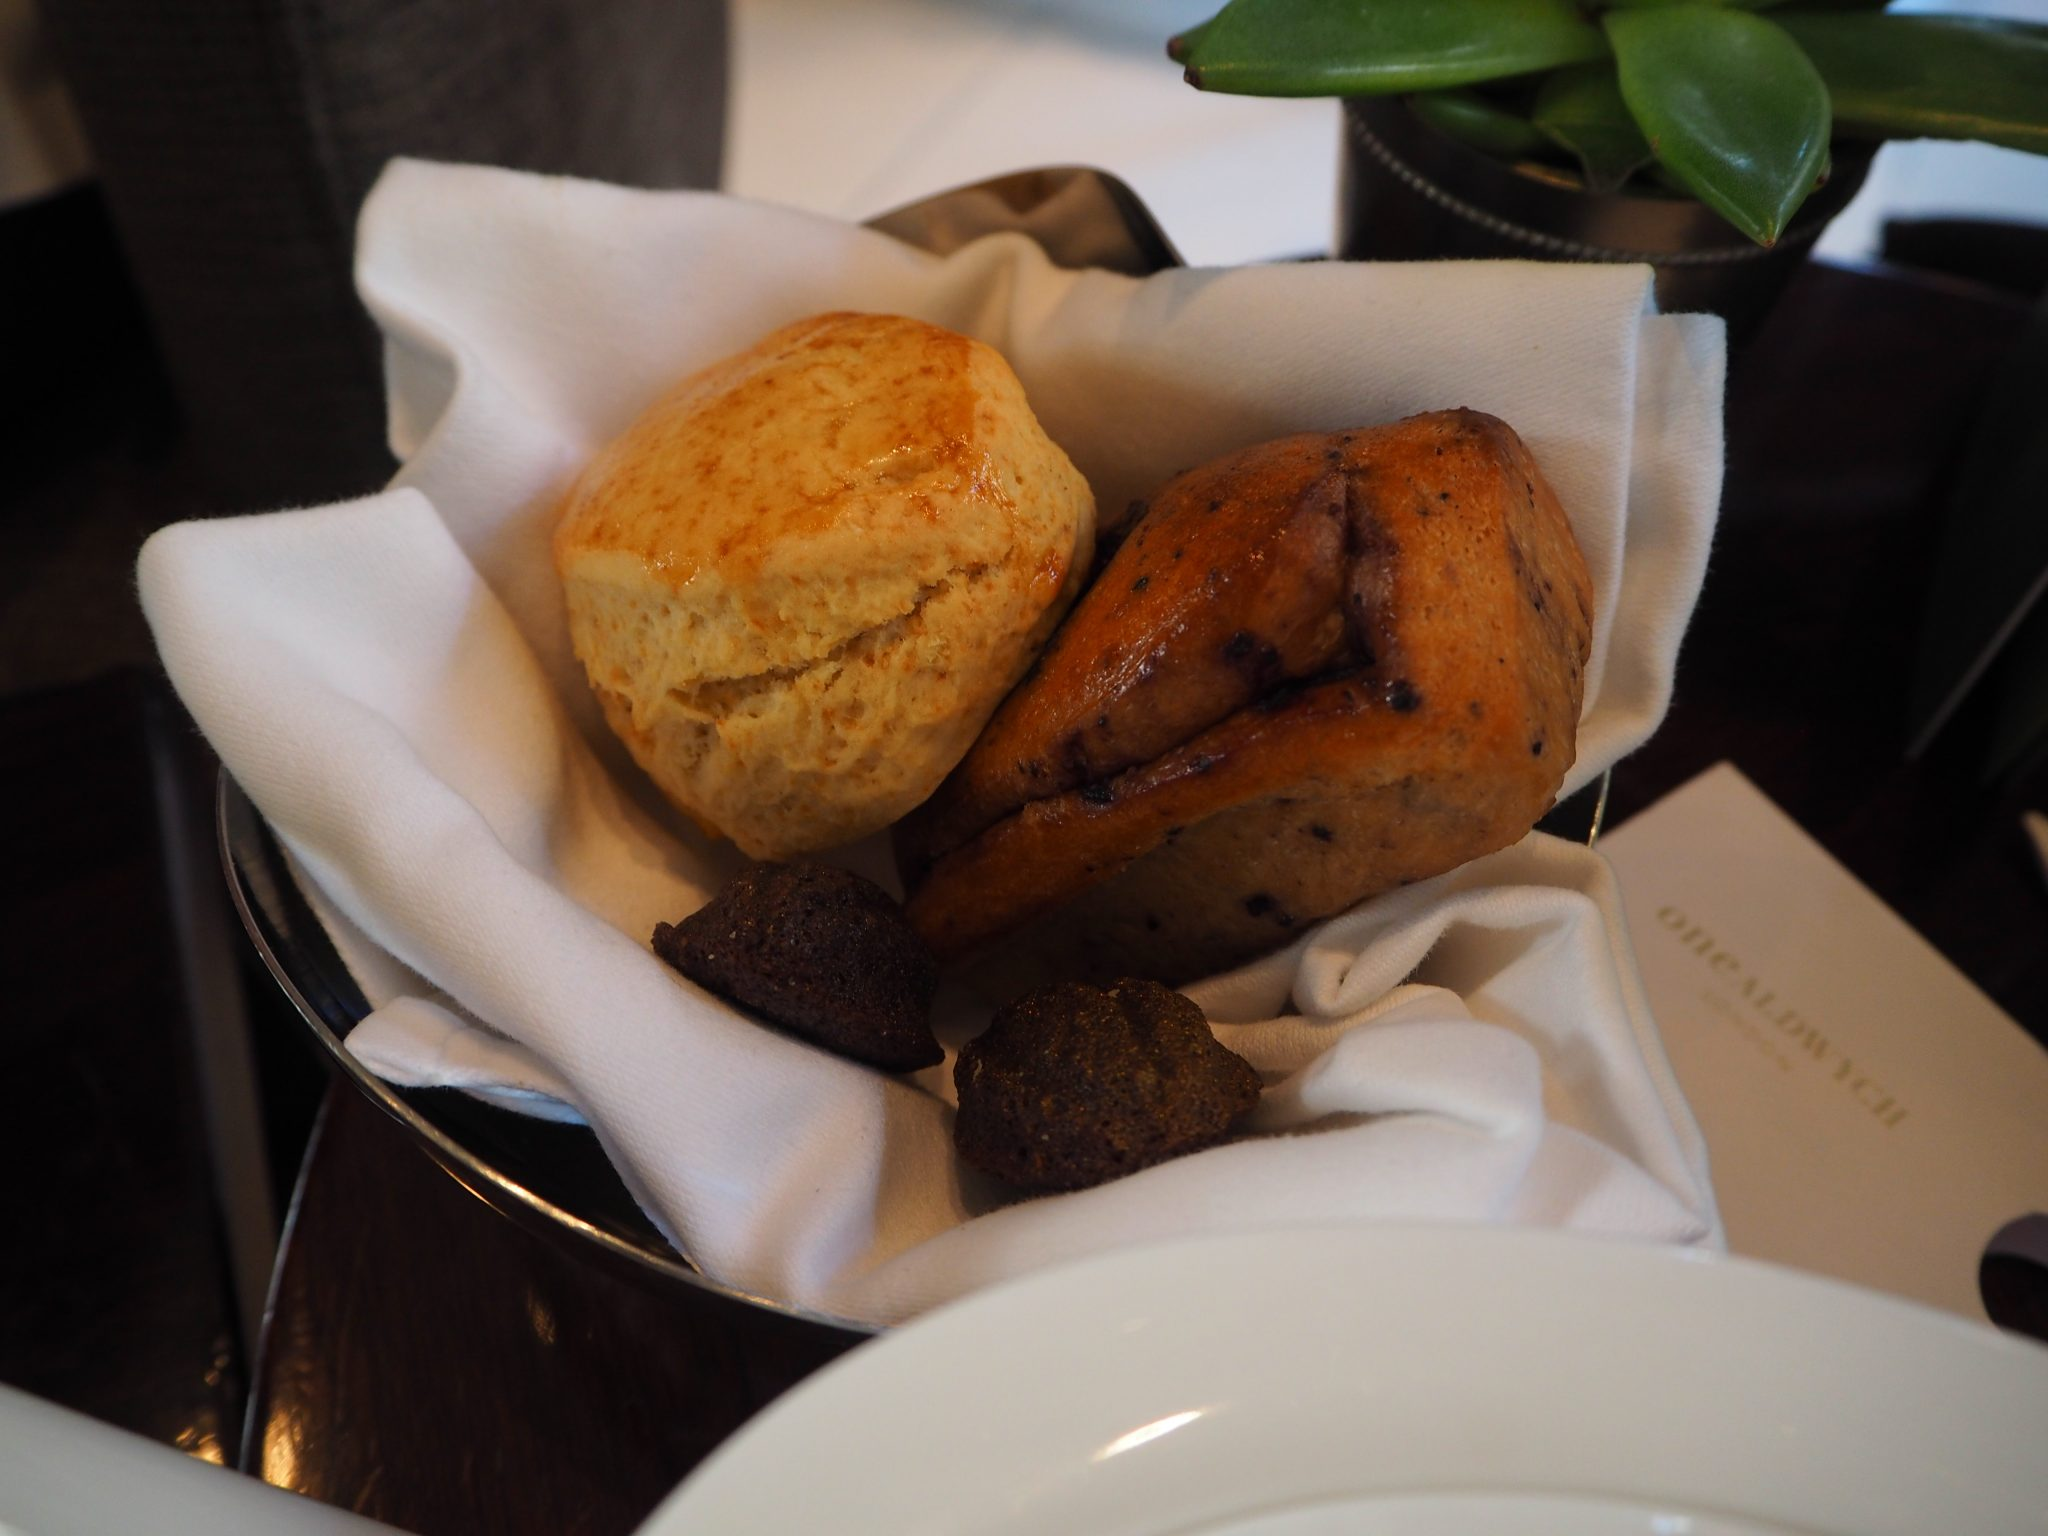 The Scones and Cakes - Charlie & The Chocolate Factory Afternoon Tea